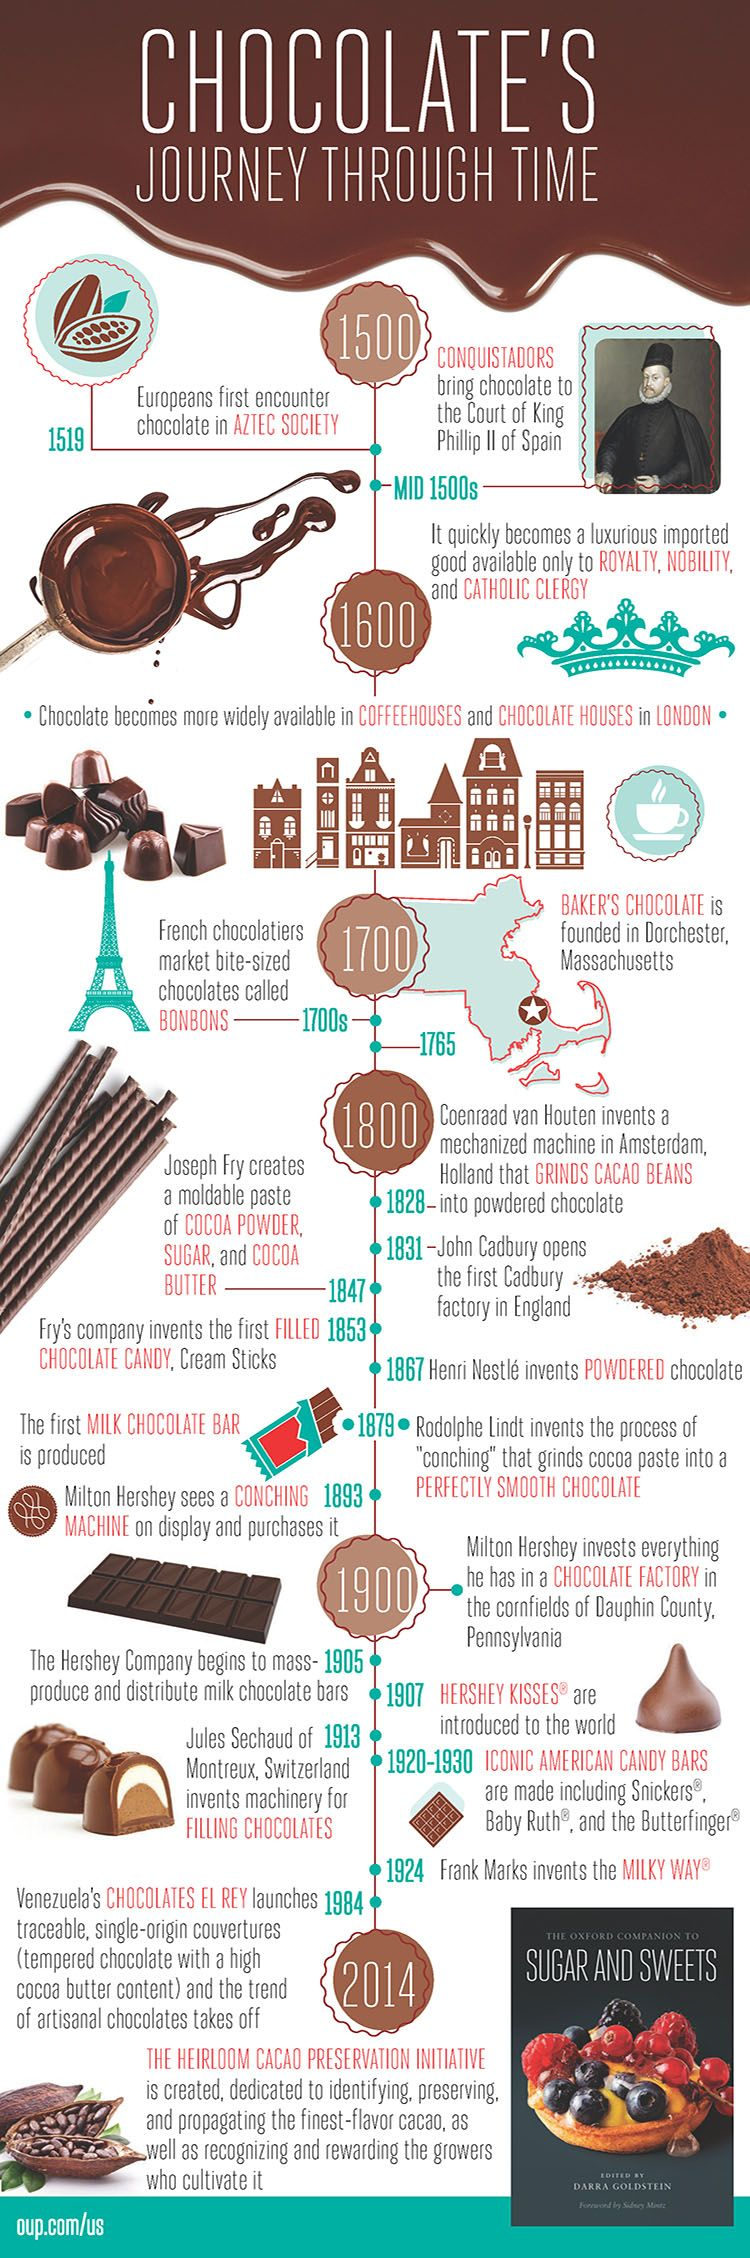 Worksheet History Of Chocolate Bars 1000 ideas about history of chocolate on pinterest chocolates theobroma cacao and cocoa